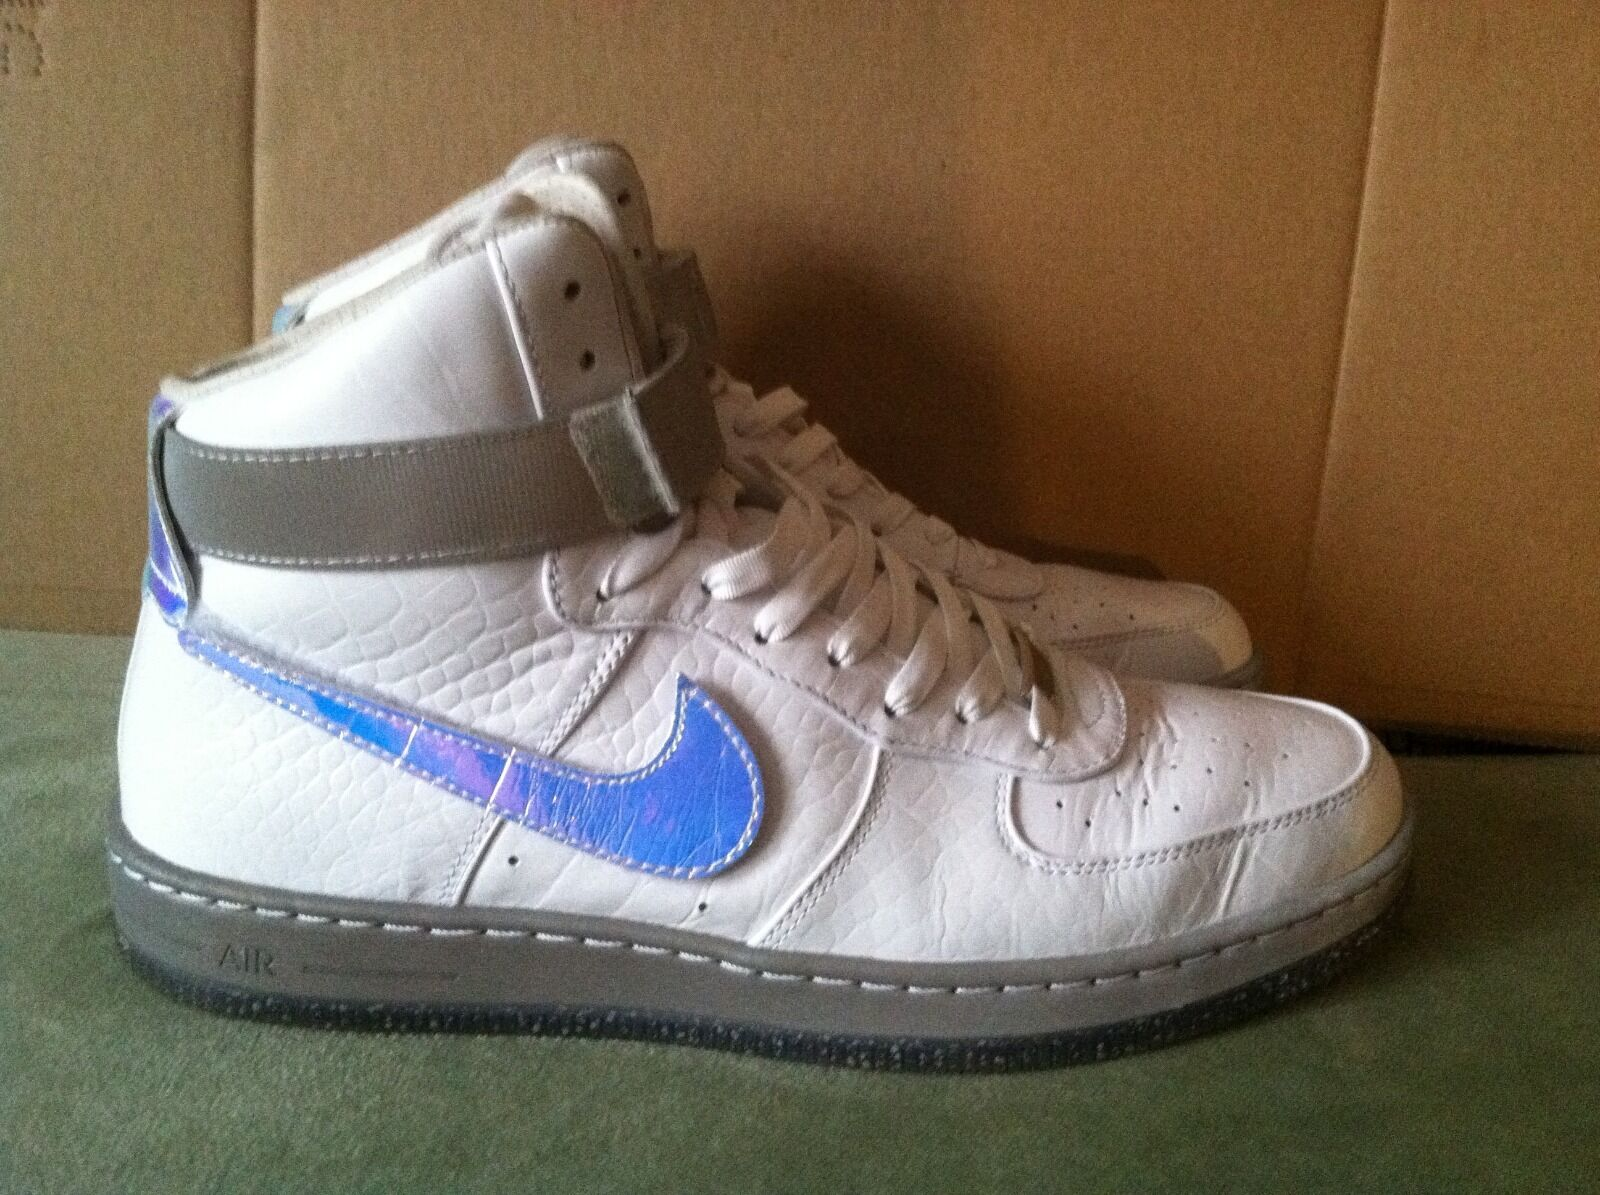 NIKE Air Force 1 AF1 Downtown HI LW QS SZ 10 White Velcro Swoosh Patent Leather